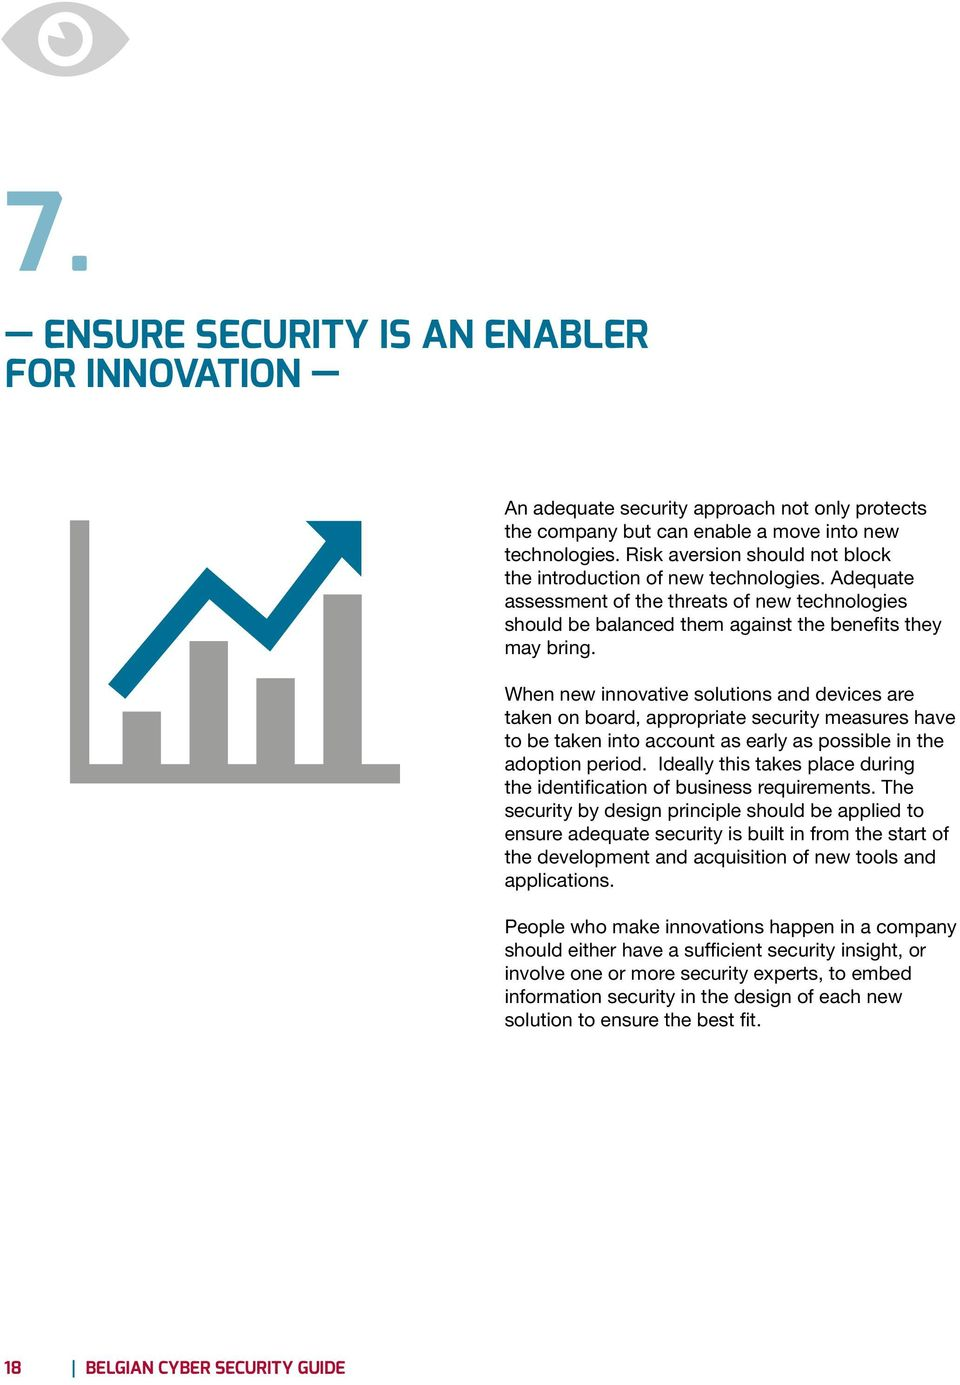 When new innovative solutions and devices are taken on board, appropriate security measures have to be taken into account as early as possible in the adoption period.